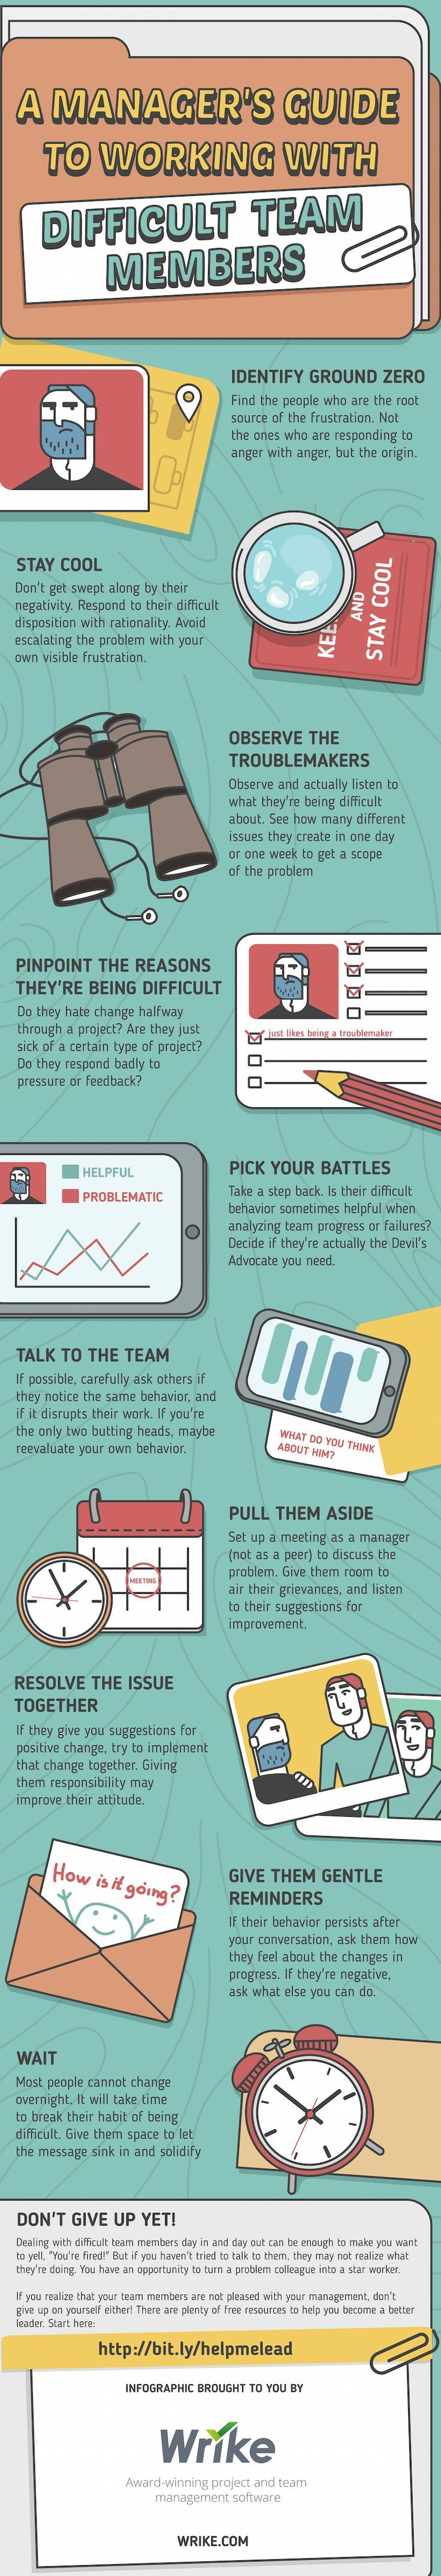 A Manager's Guide to Working with Difficult Team Members (Infographic) —Read more here: https://www.wrike.com/blog/working-with-difficult-team-members-infographic/?utm_source=pinterest&utm_medium=socials&utm_campaign=blogposts